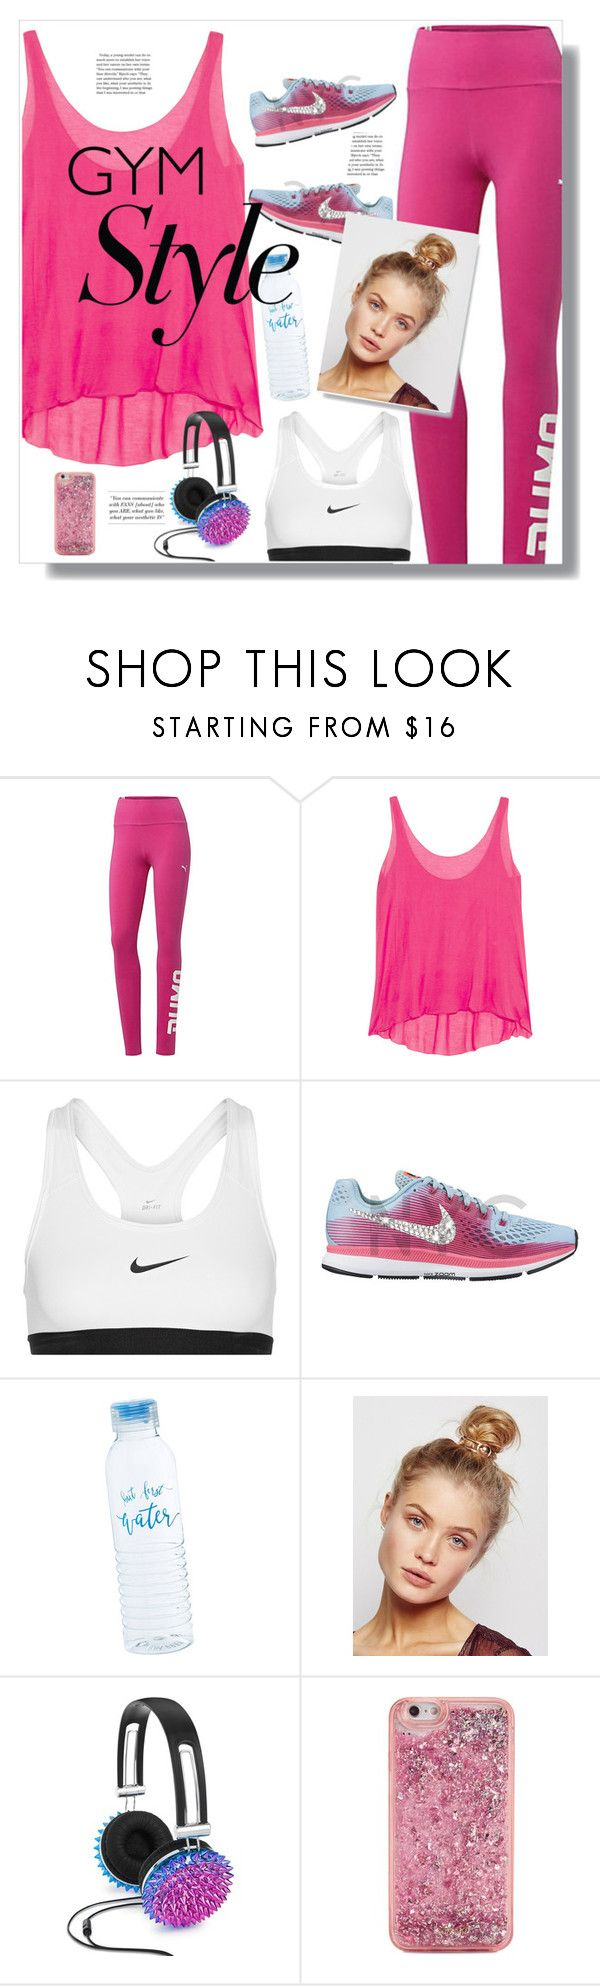 """Gym time"" by pao-mechanic ❤ liked on Polyvore featuring Enza Costa, NIKE, Free People, Celebrate Shop and ban.do"